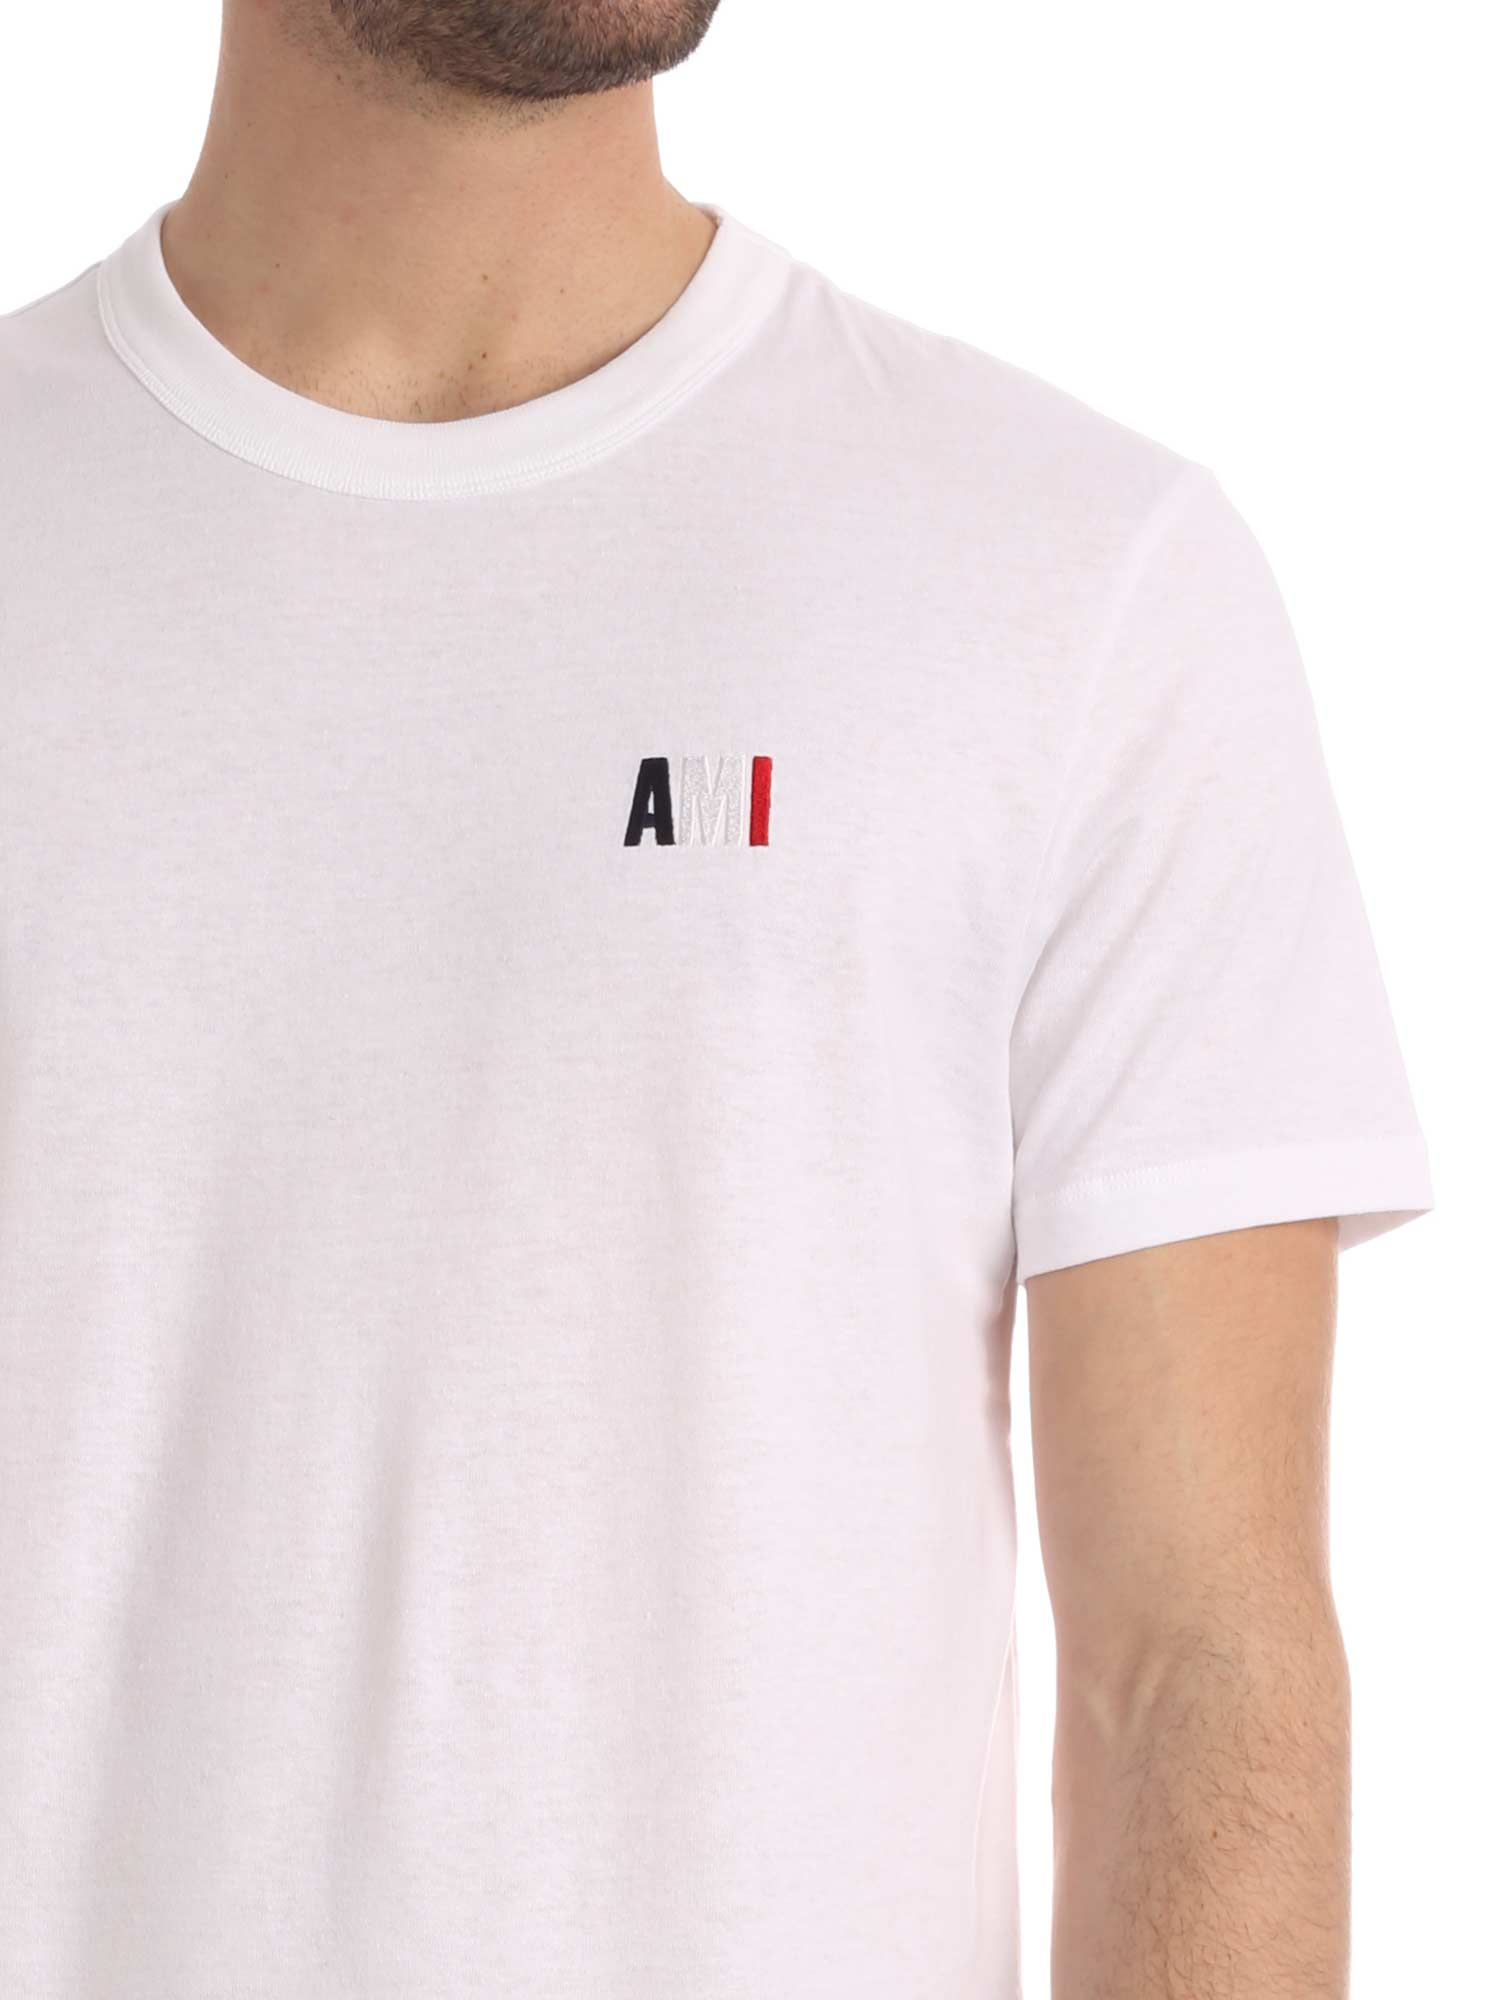 Picture of Ami | Crewneck Tee With Blue White Red Ami Embroidery